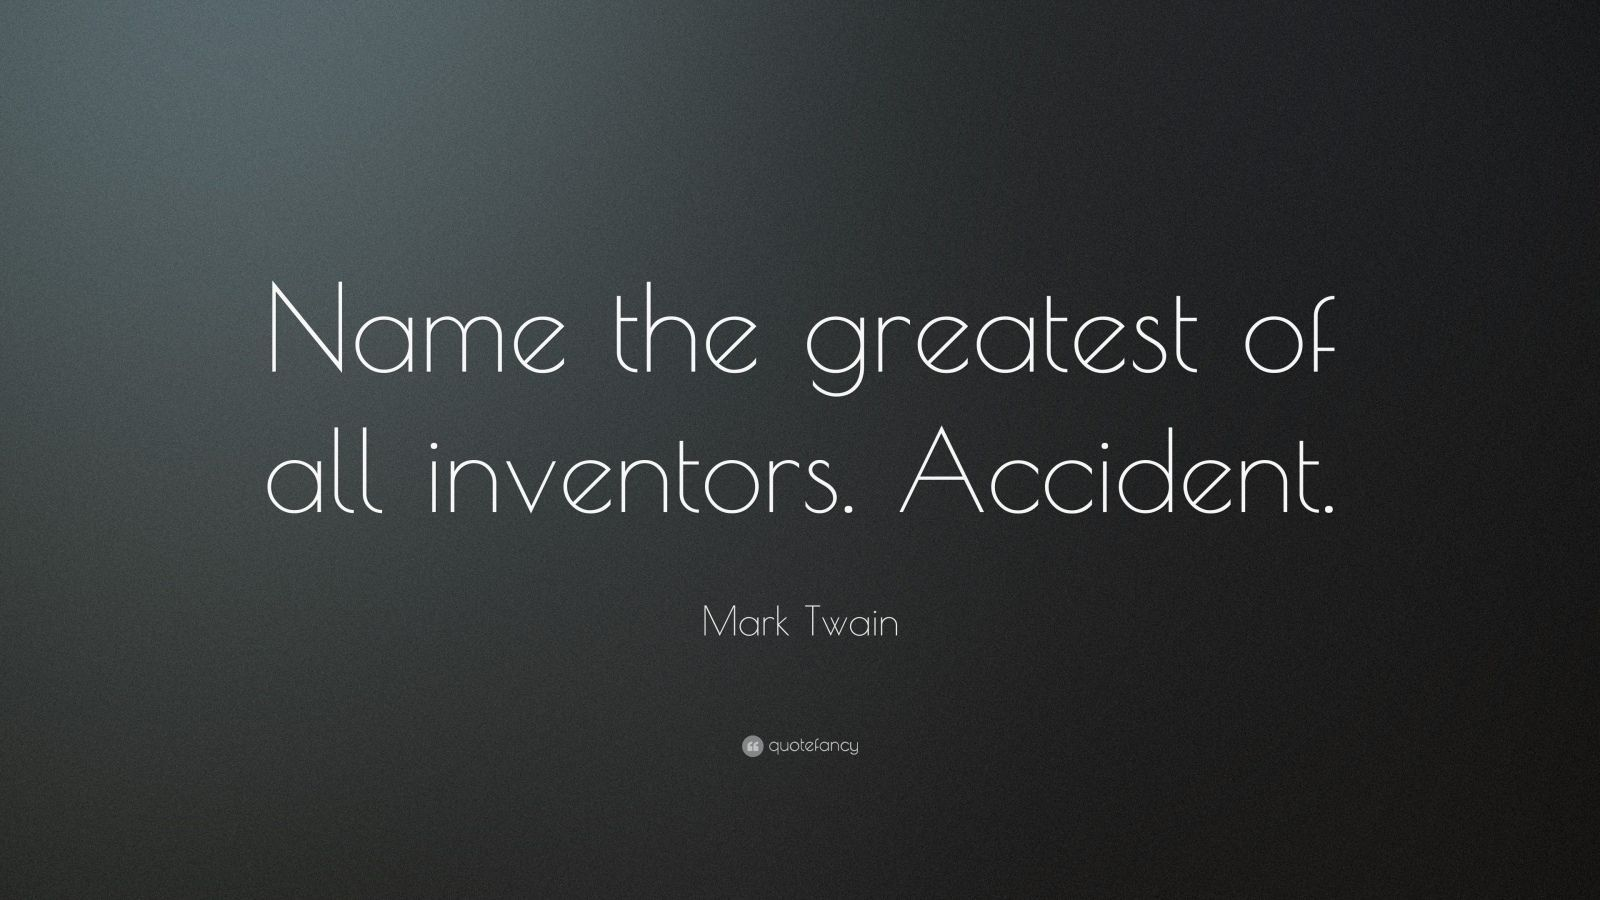 Mark Twain Quotes Discover The Top 10 Greatest Mark Twain Quotes Inspirational Mark